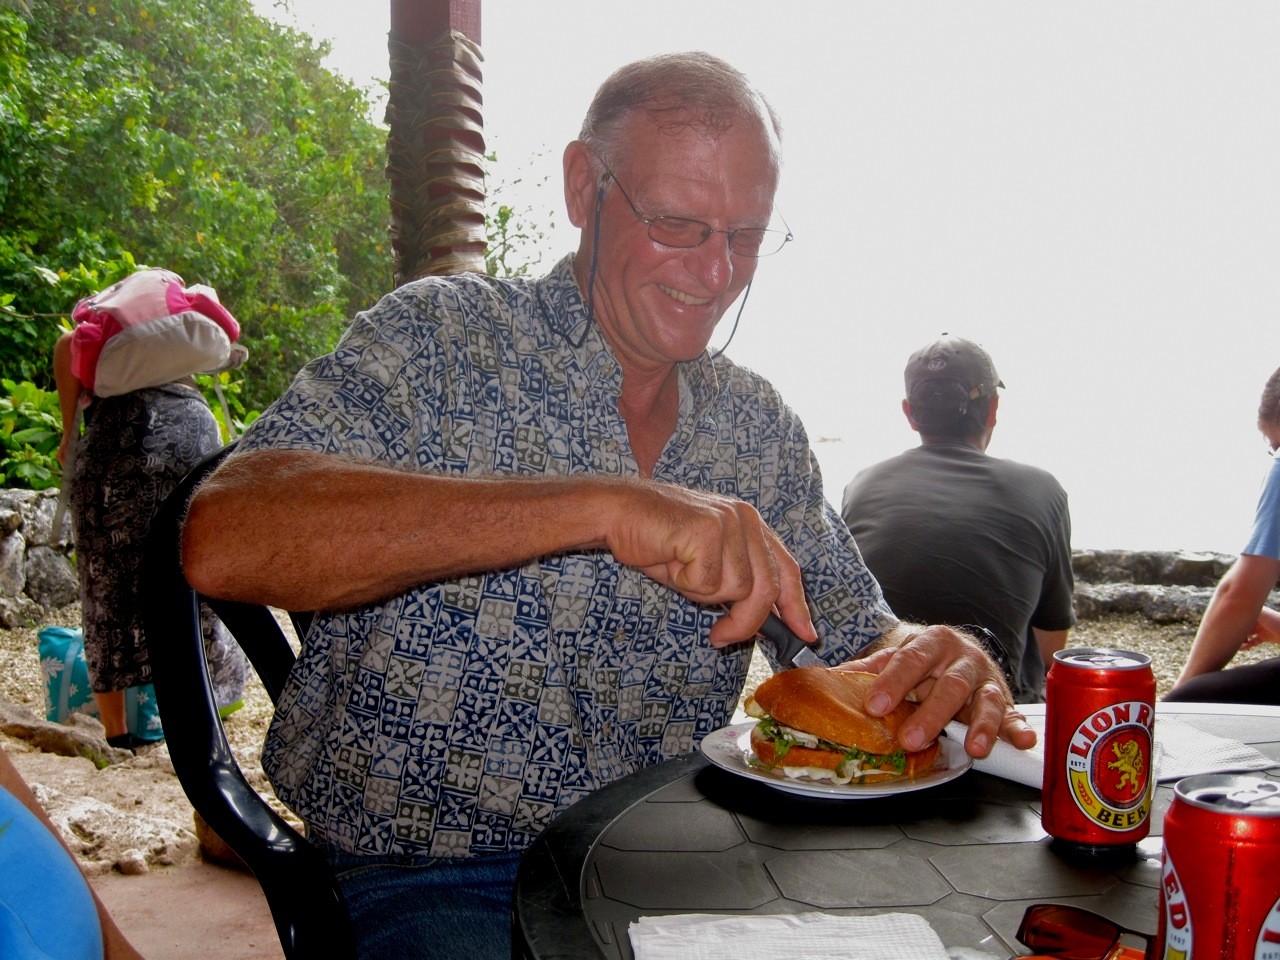 David enjoys a cheeseburger in paradise at The Washaway Cafe